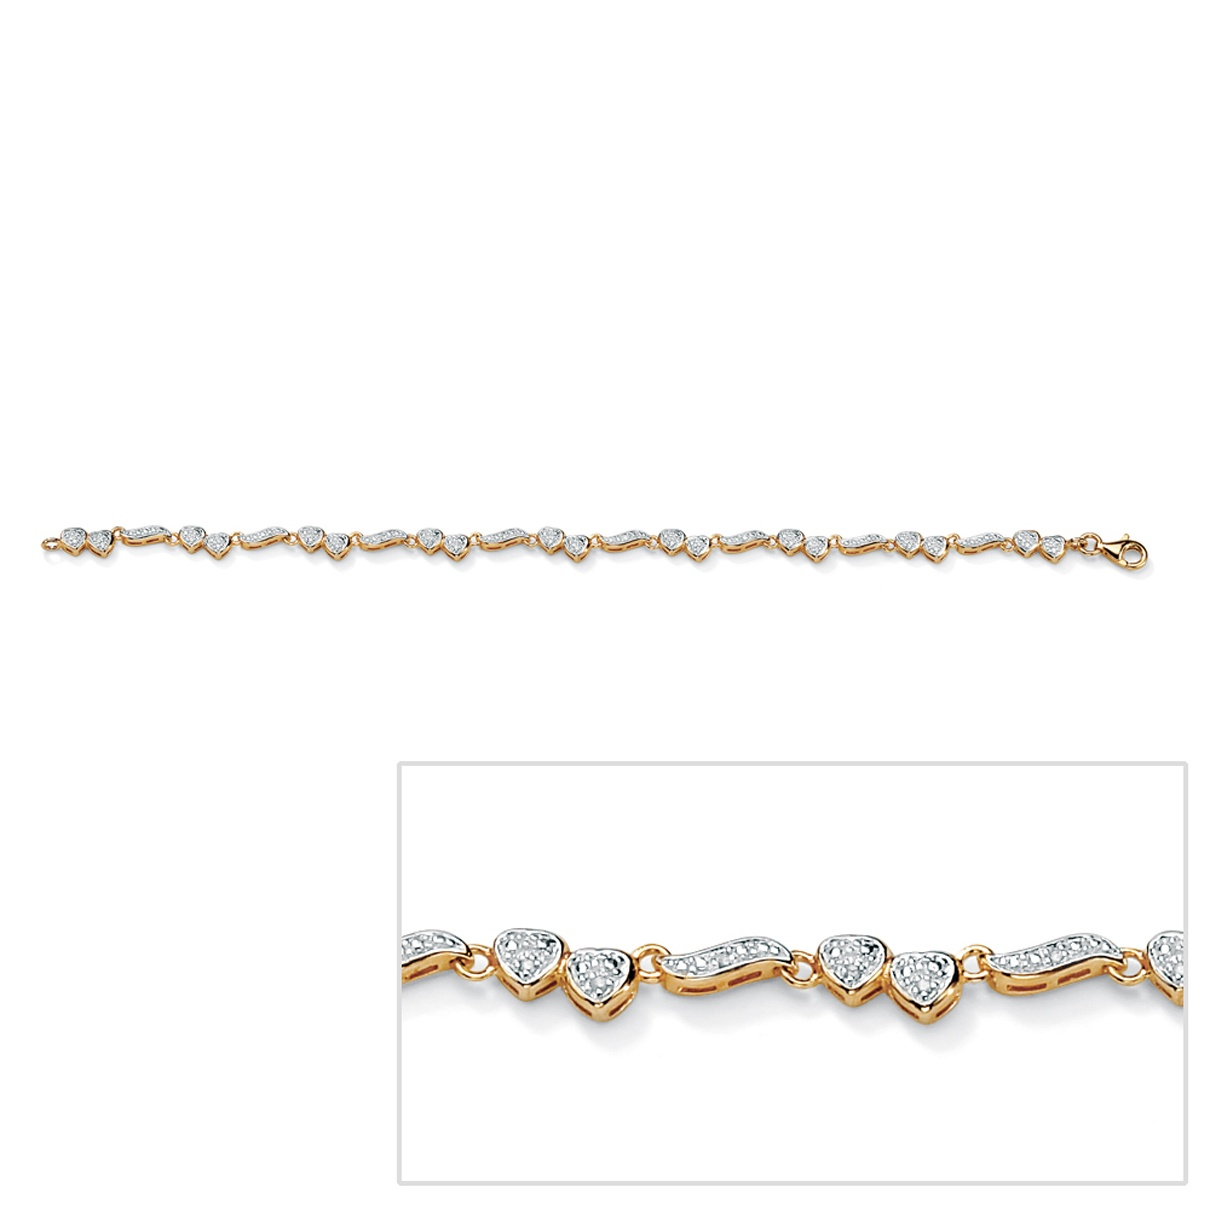 silver in from gold tennis item stretch rhinestone clear row anklets ankle femininas crystal foot chain anklet tornozeleira jewelry bracelet leg one